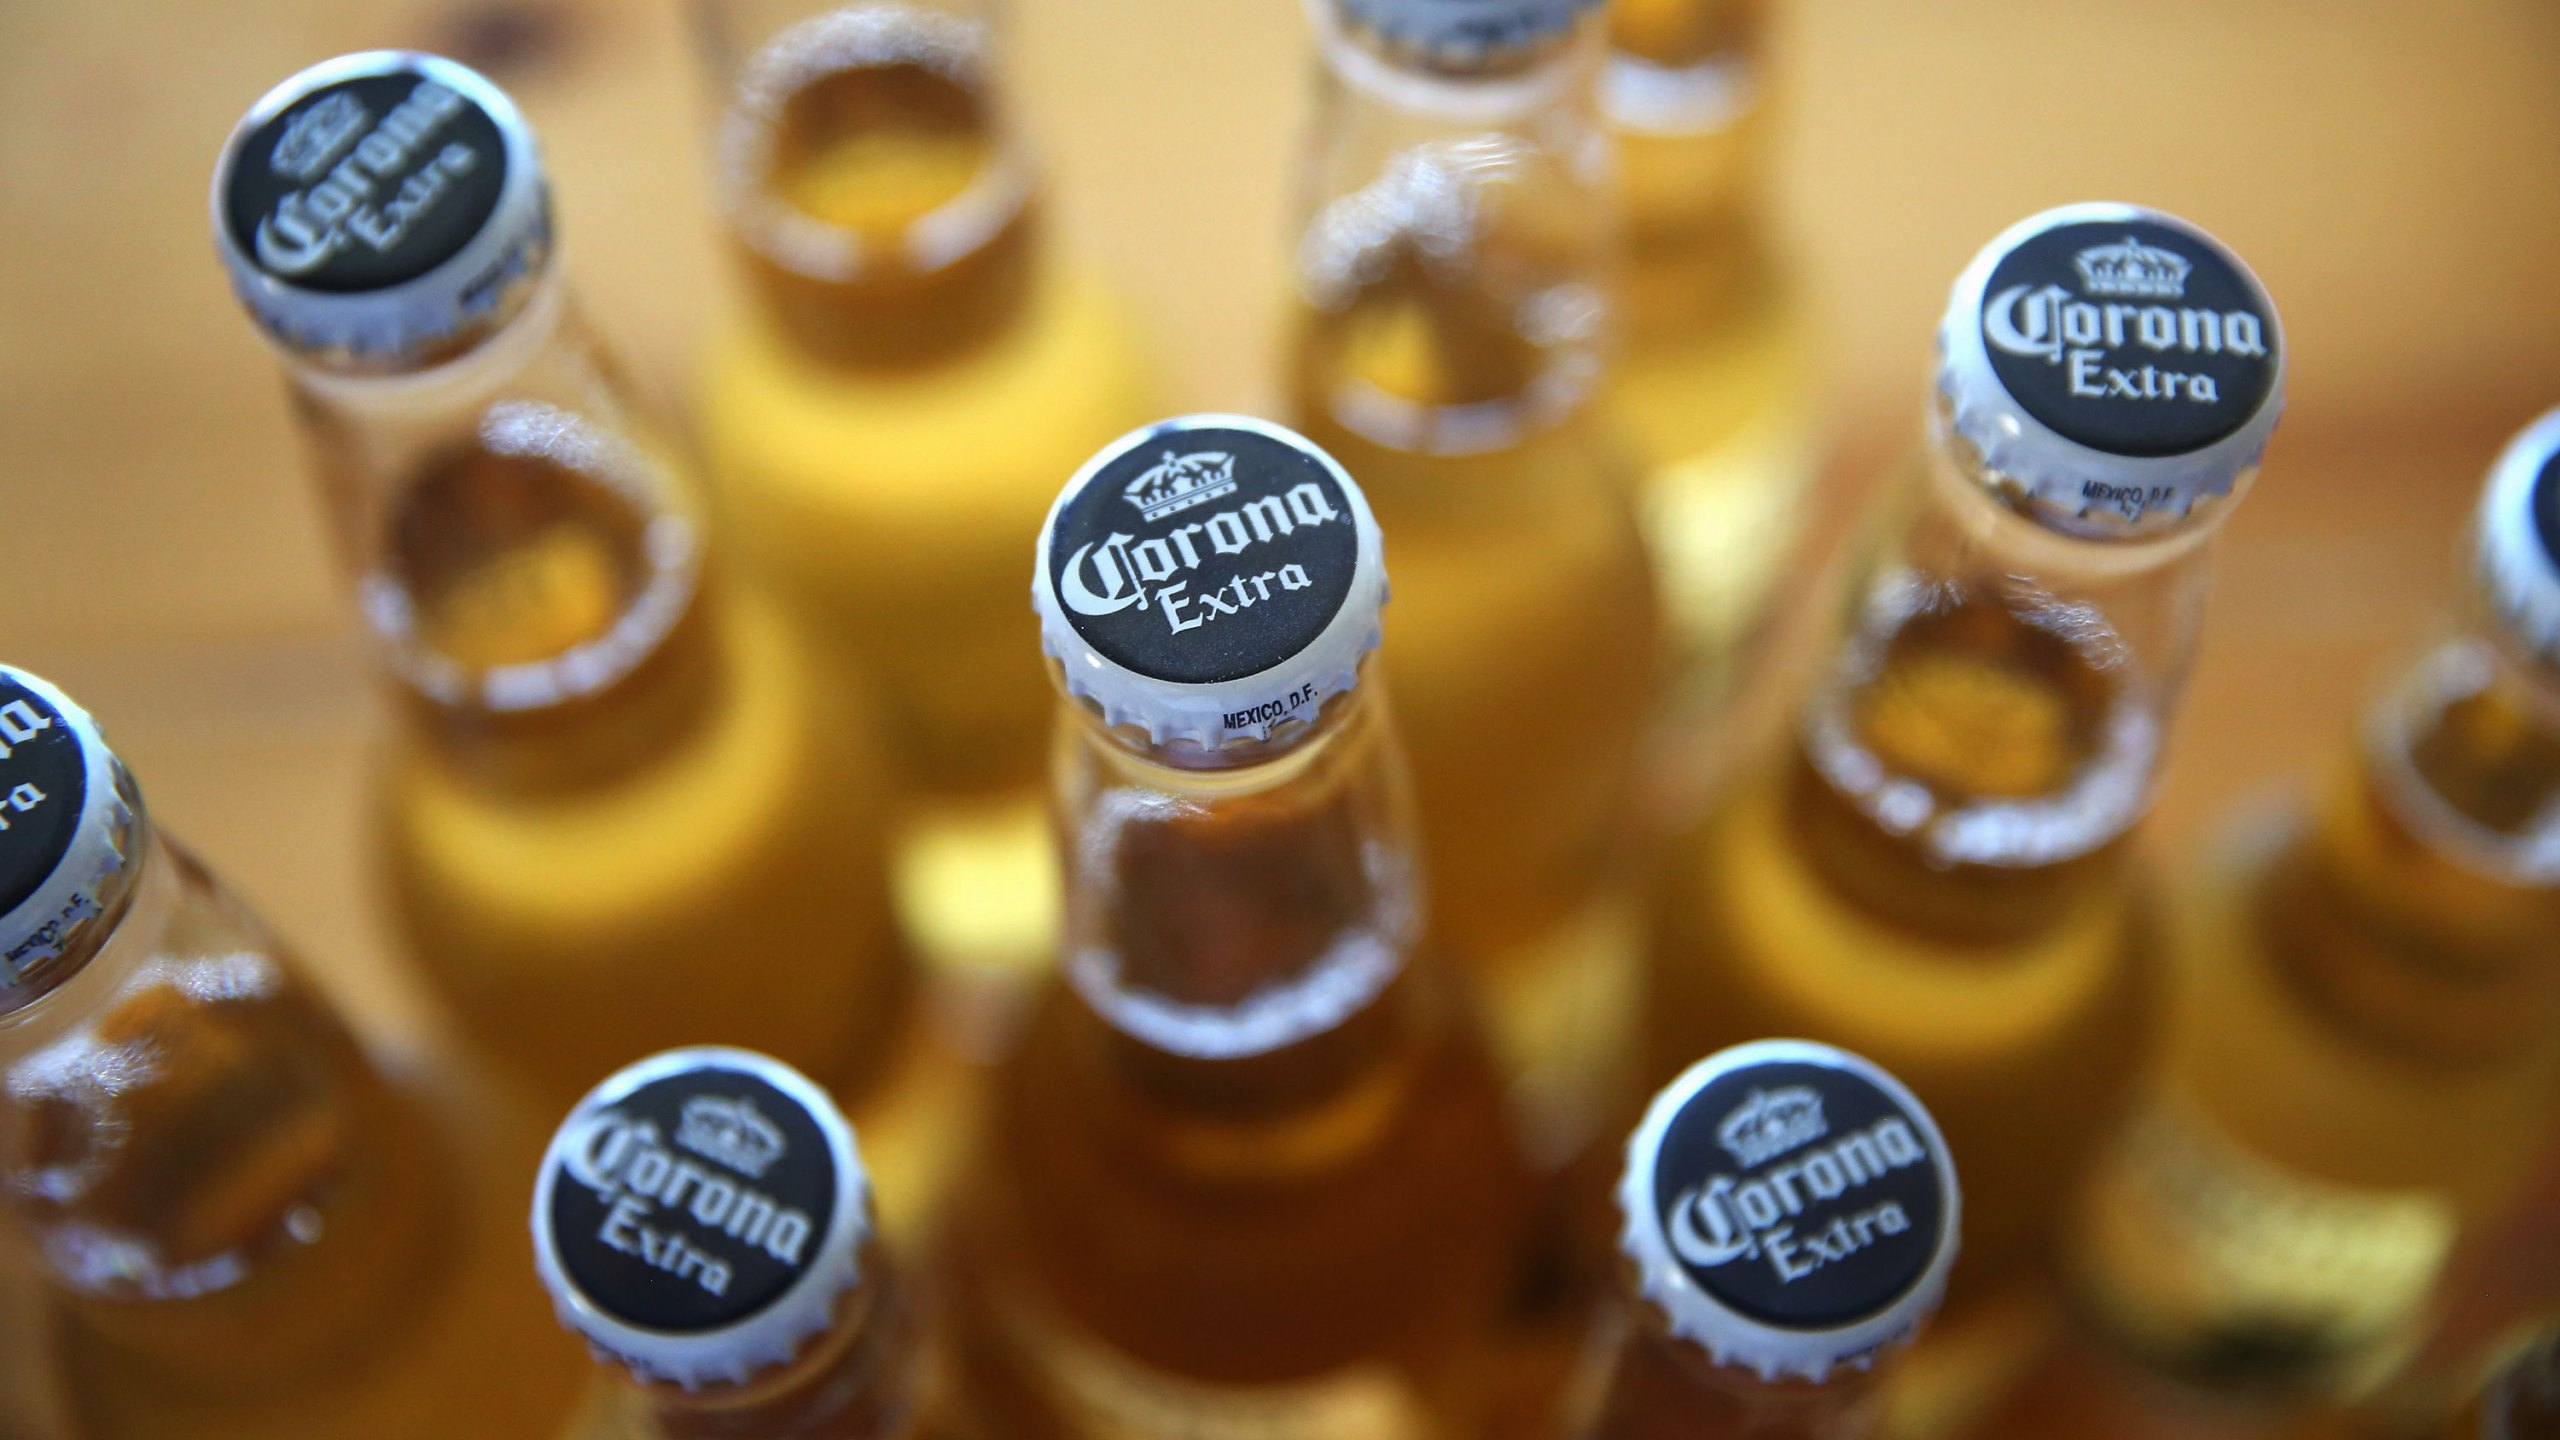 In this photo illustration, bottles of Corona beer are shown on June 7, 2013 in Chicago, Illinois. Constellation Brands, one of the world's largest wine companies, is expected to become the third-largest beer supplier in the United State today with a $5.3 billion purchase of the U.S. distribution rights of Grupo Modelo beers from Anheuser Busch InBev. Corona Extra, brewed by Grupo Modelo, is the number one selling imported beer sold in the United States and the number six selling beer overall. (Photo Illustration by Scott Olson/Getty Images)